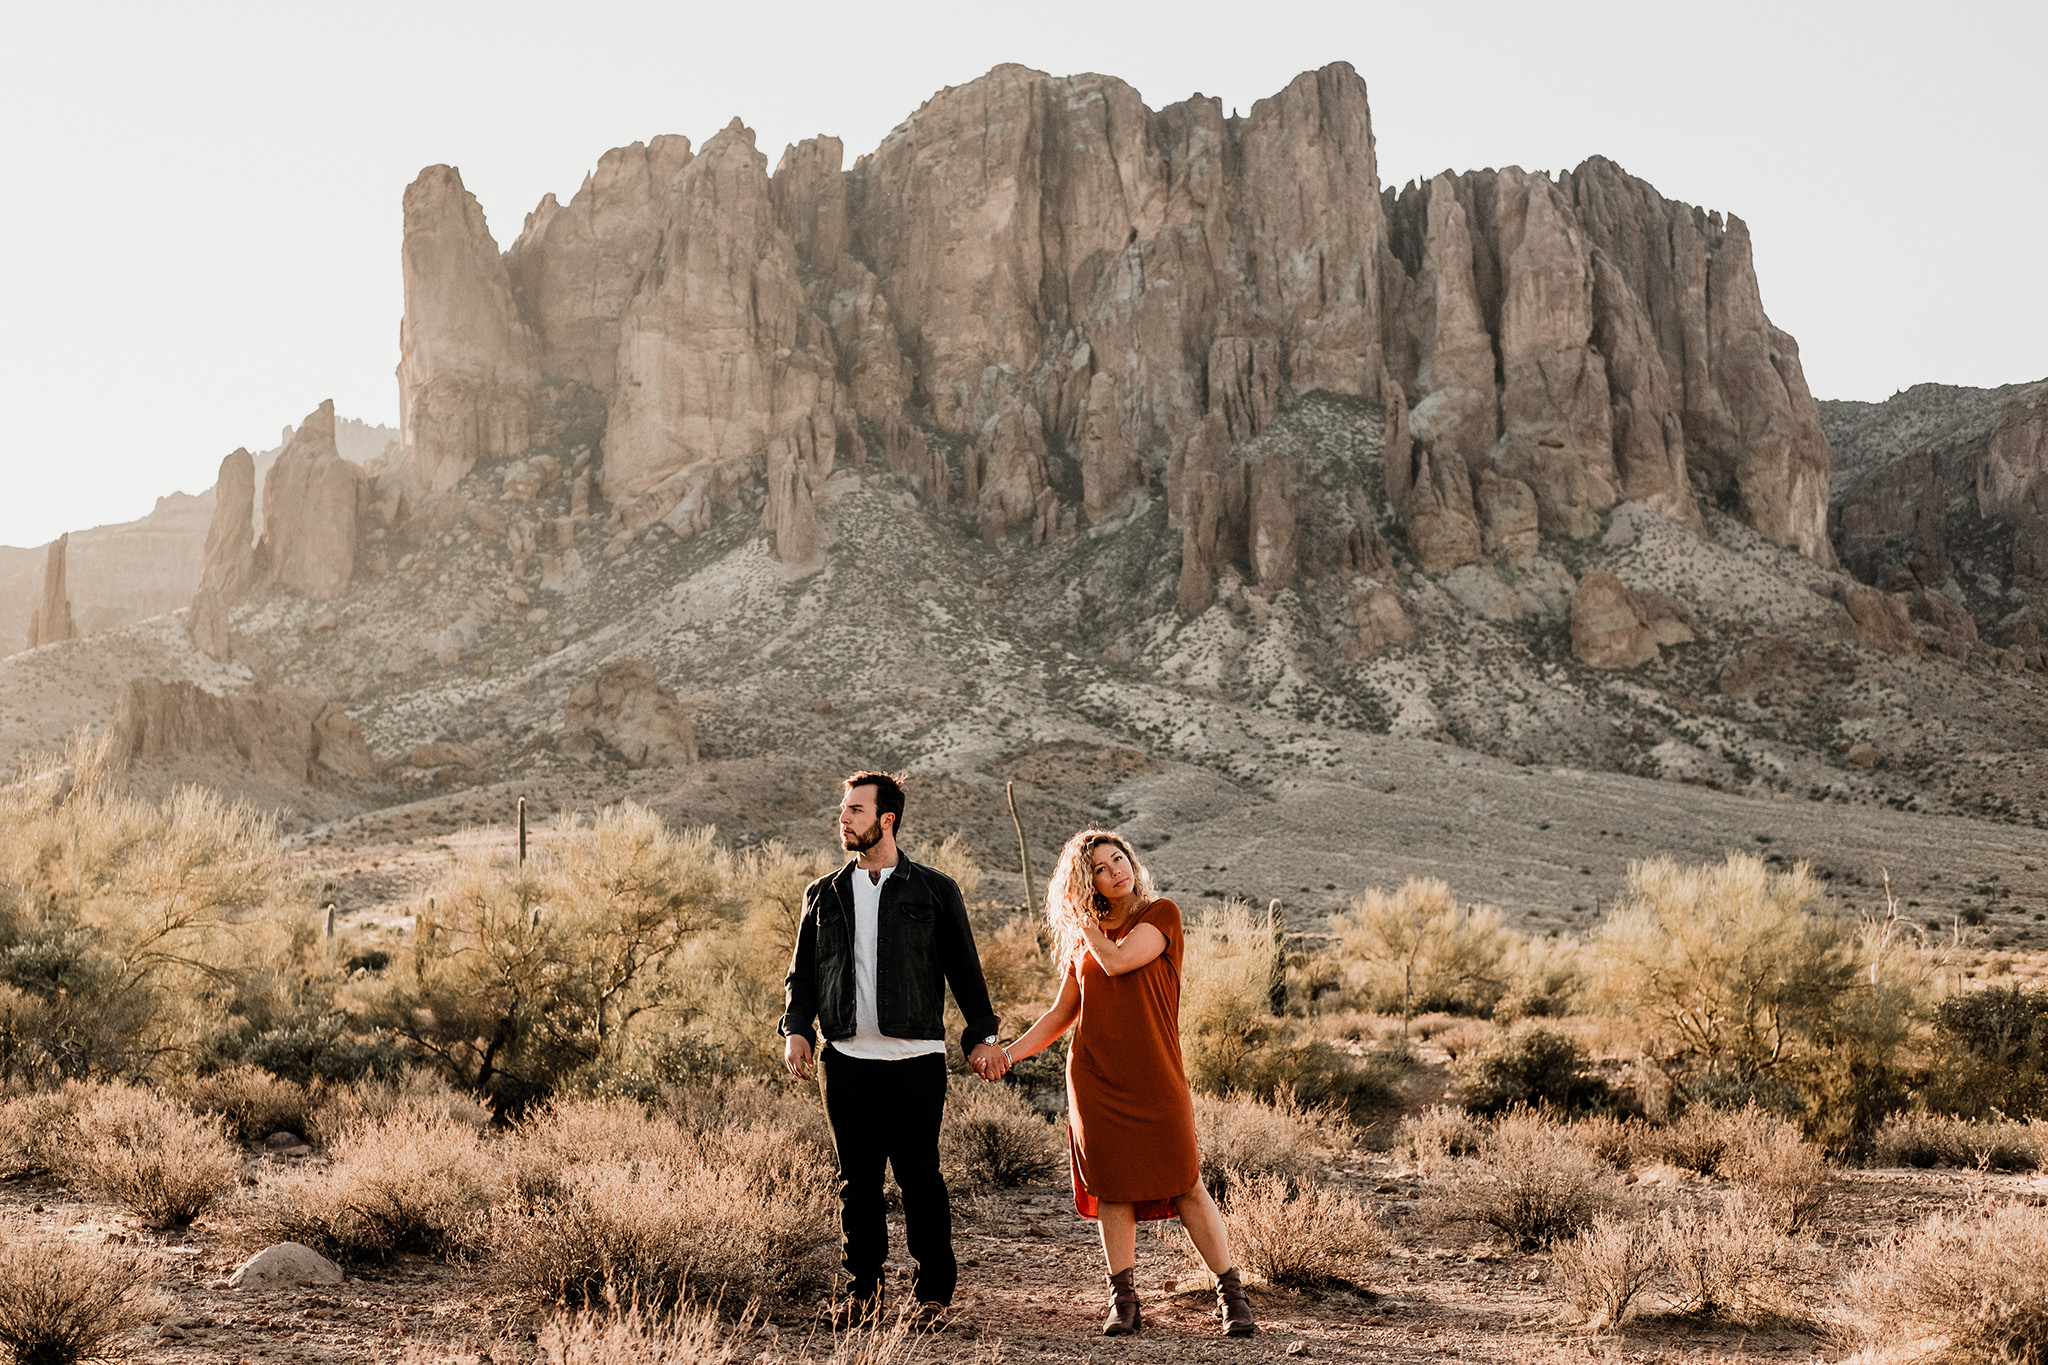 Arizona-Desert-Intimate-Wedding-Photographer-Lost-Dutchman-State-Park (34).jpg